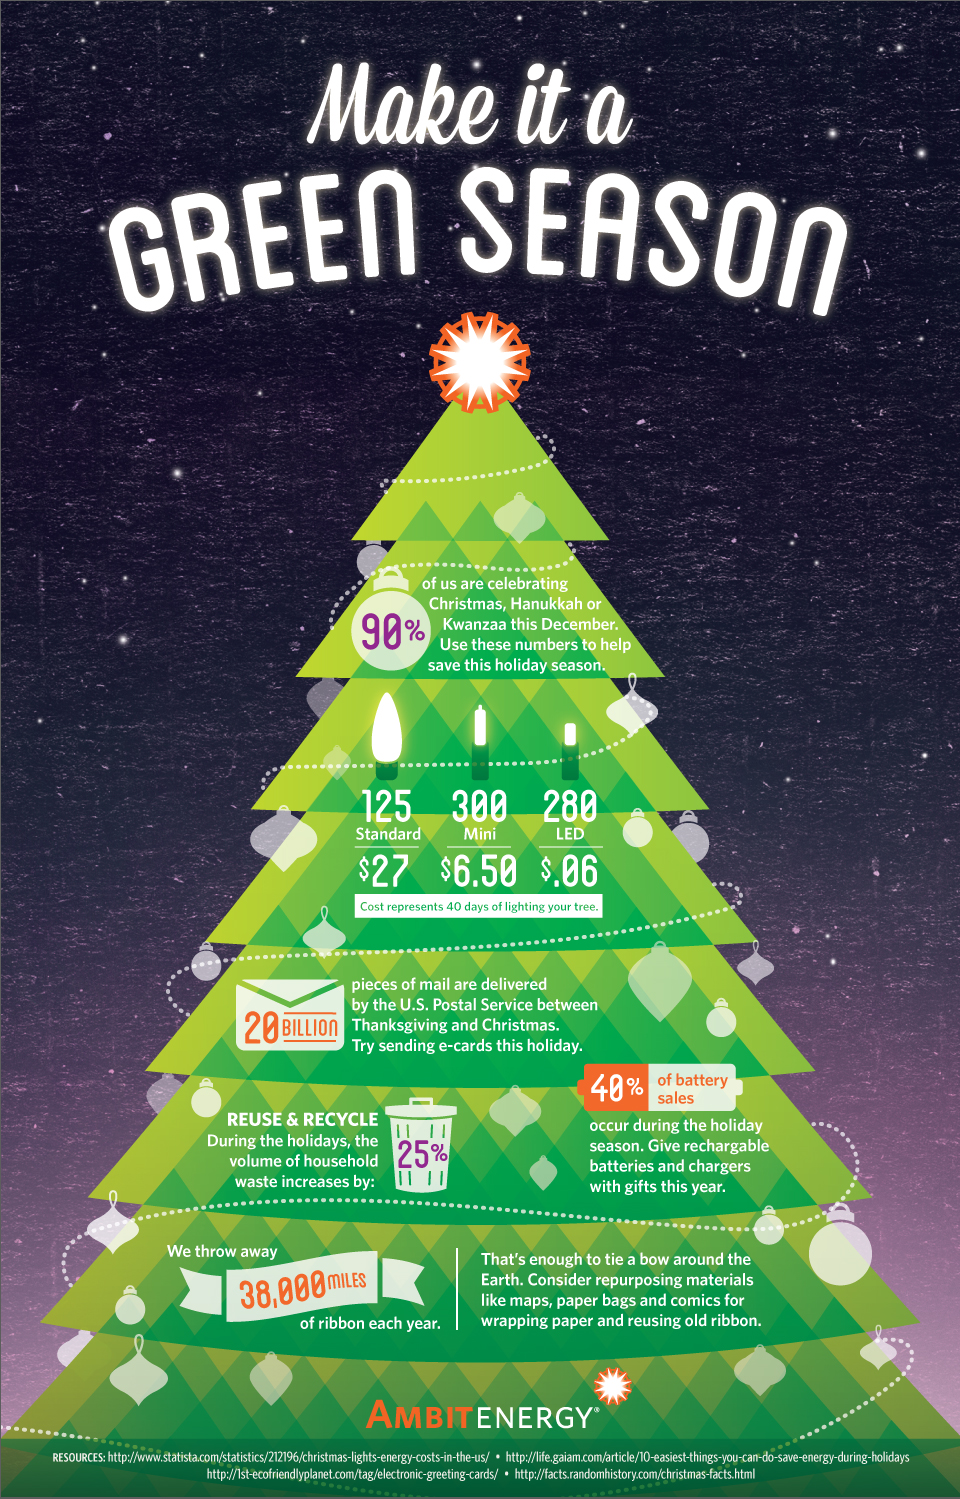 Infographic: Make it a Green Season with Spirited Holiday Savings